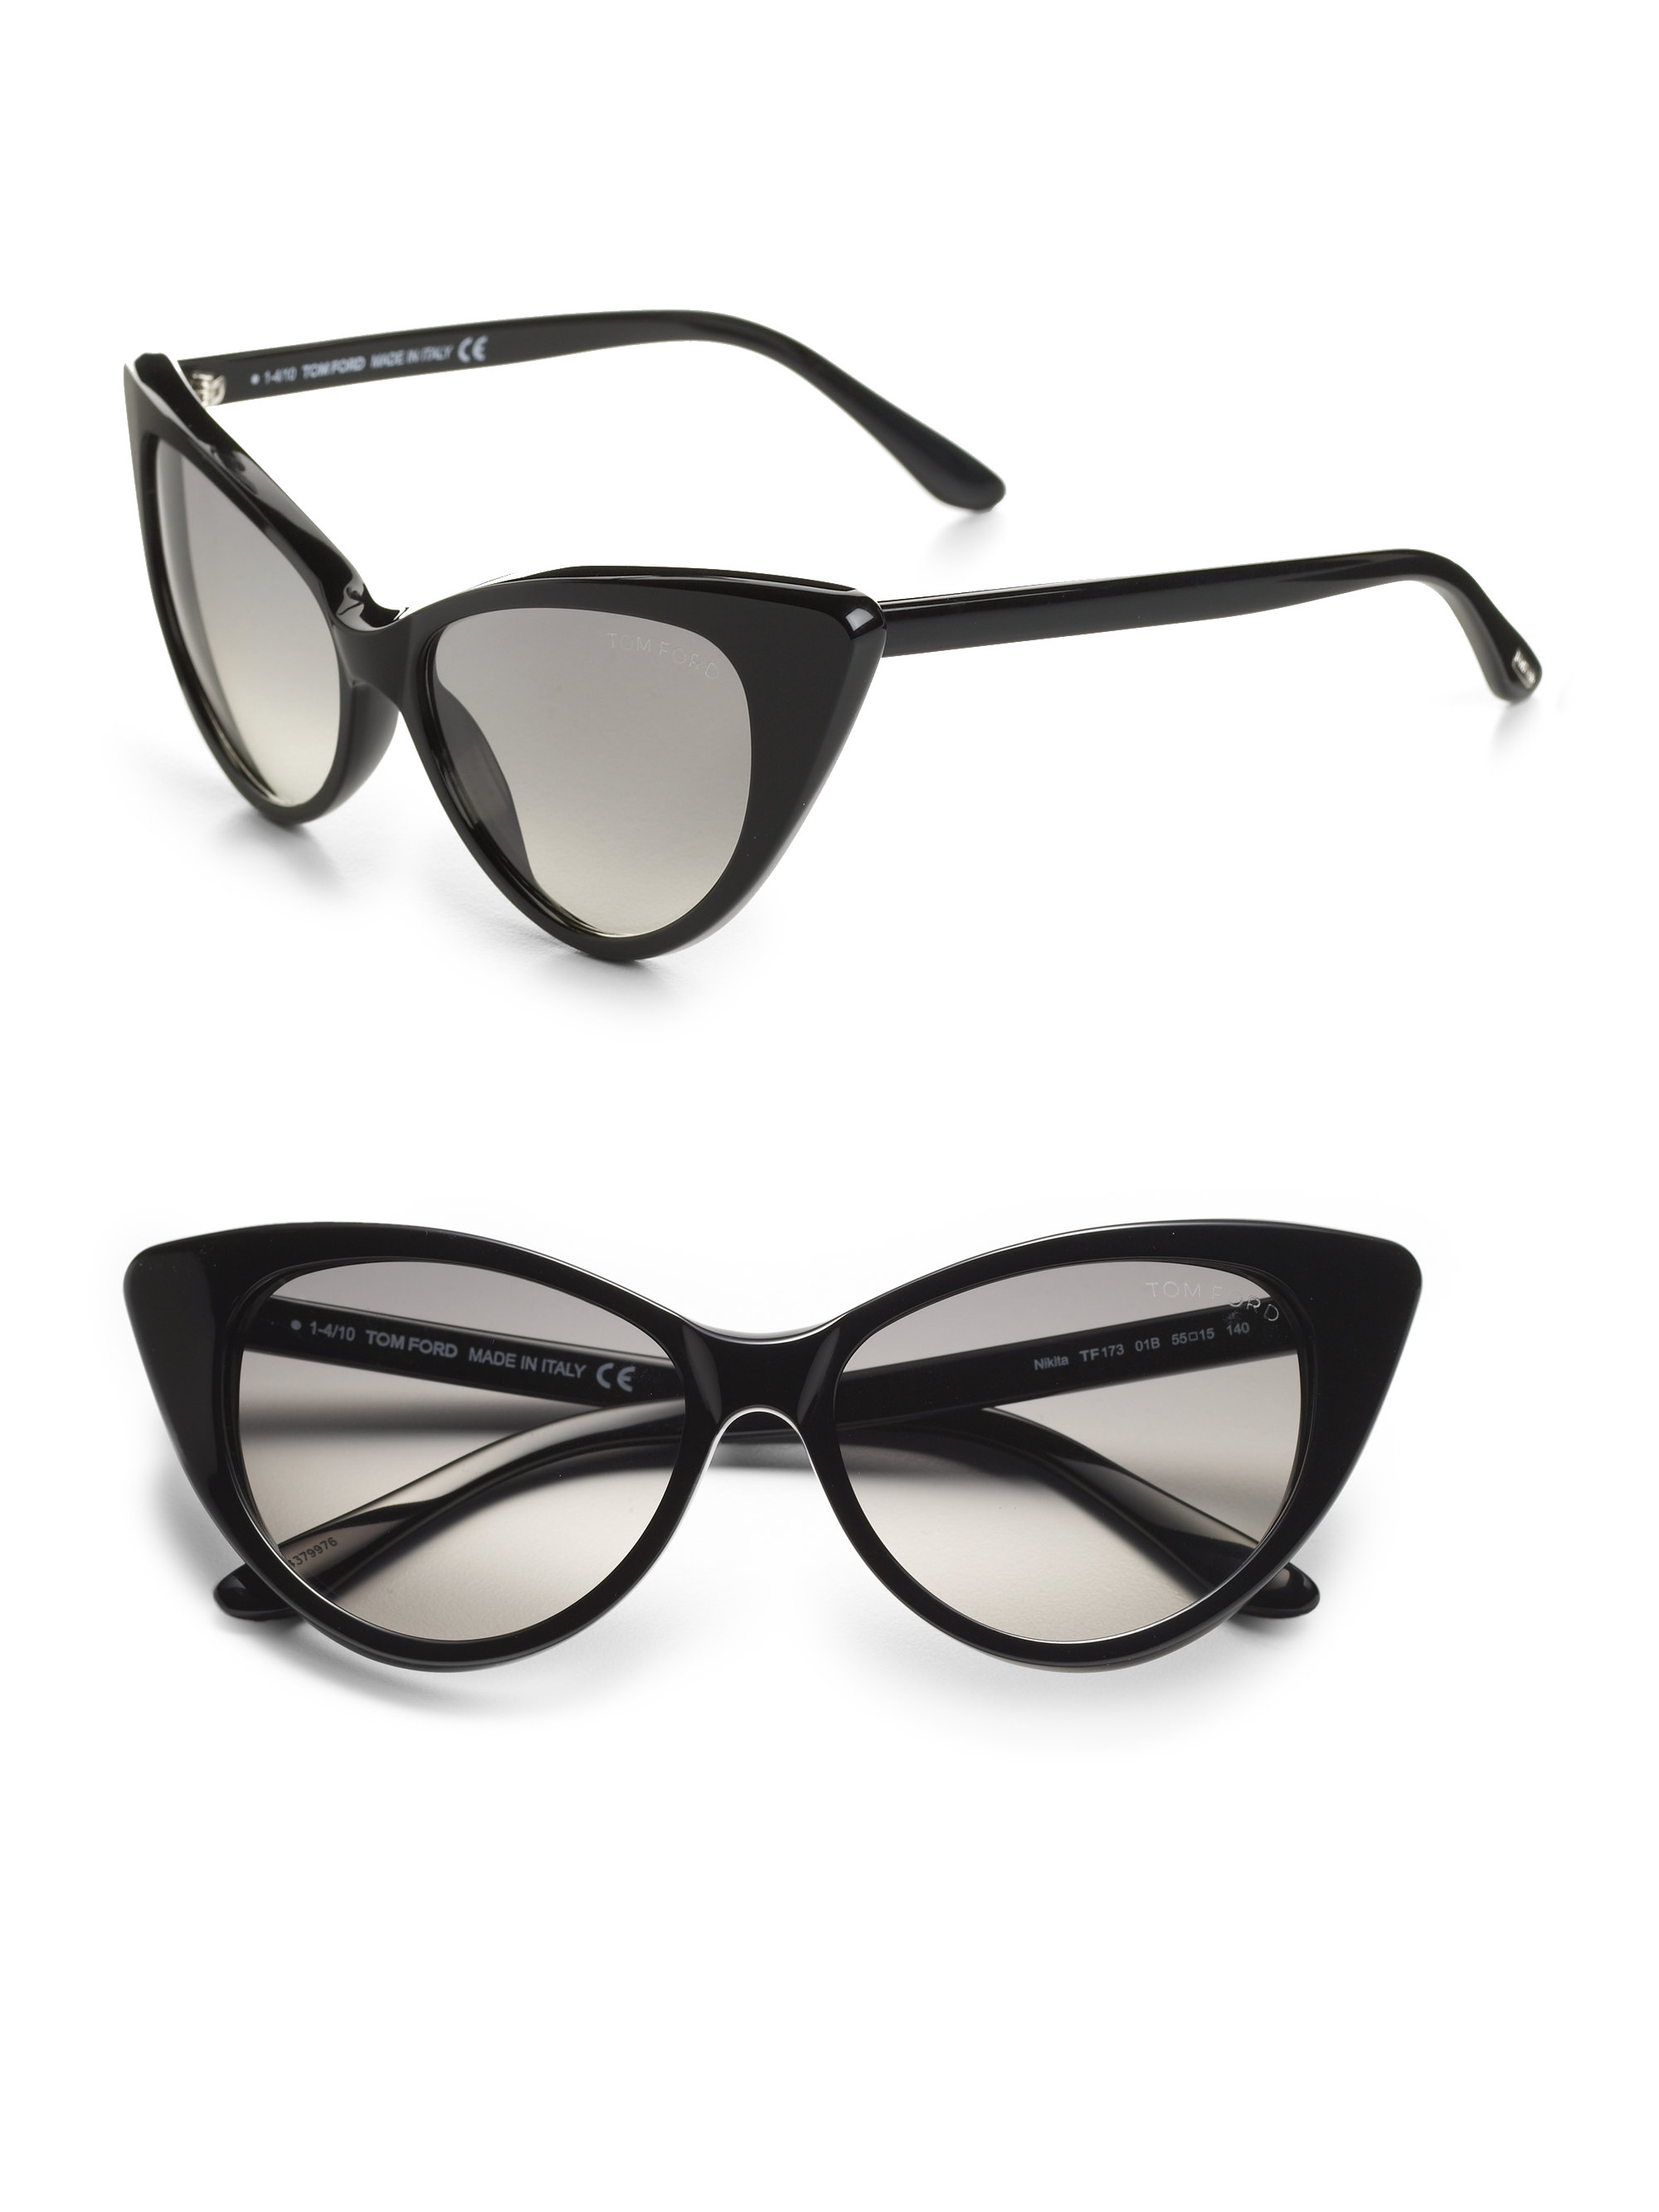 Cat Eye Sunglasses Online Shopping India Www Tapdance Org